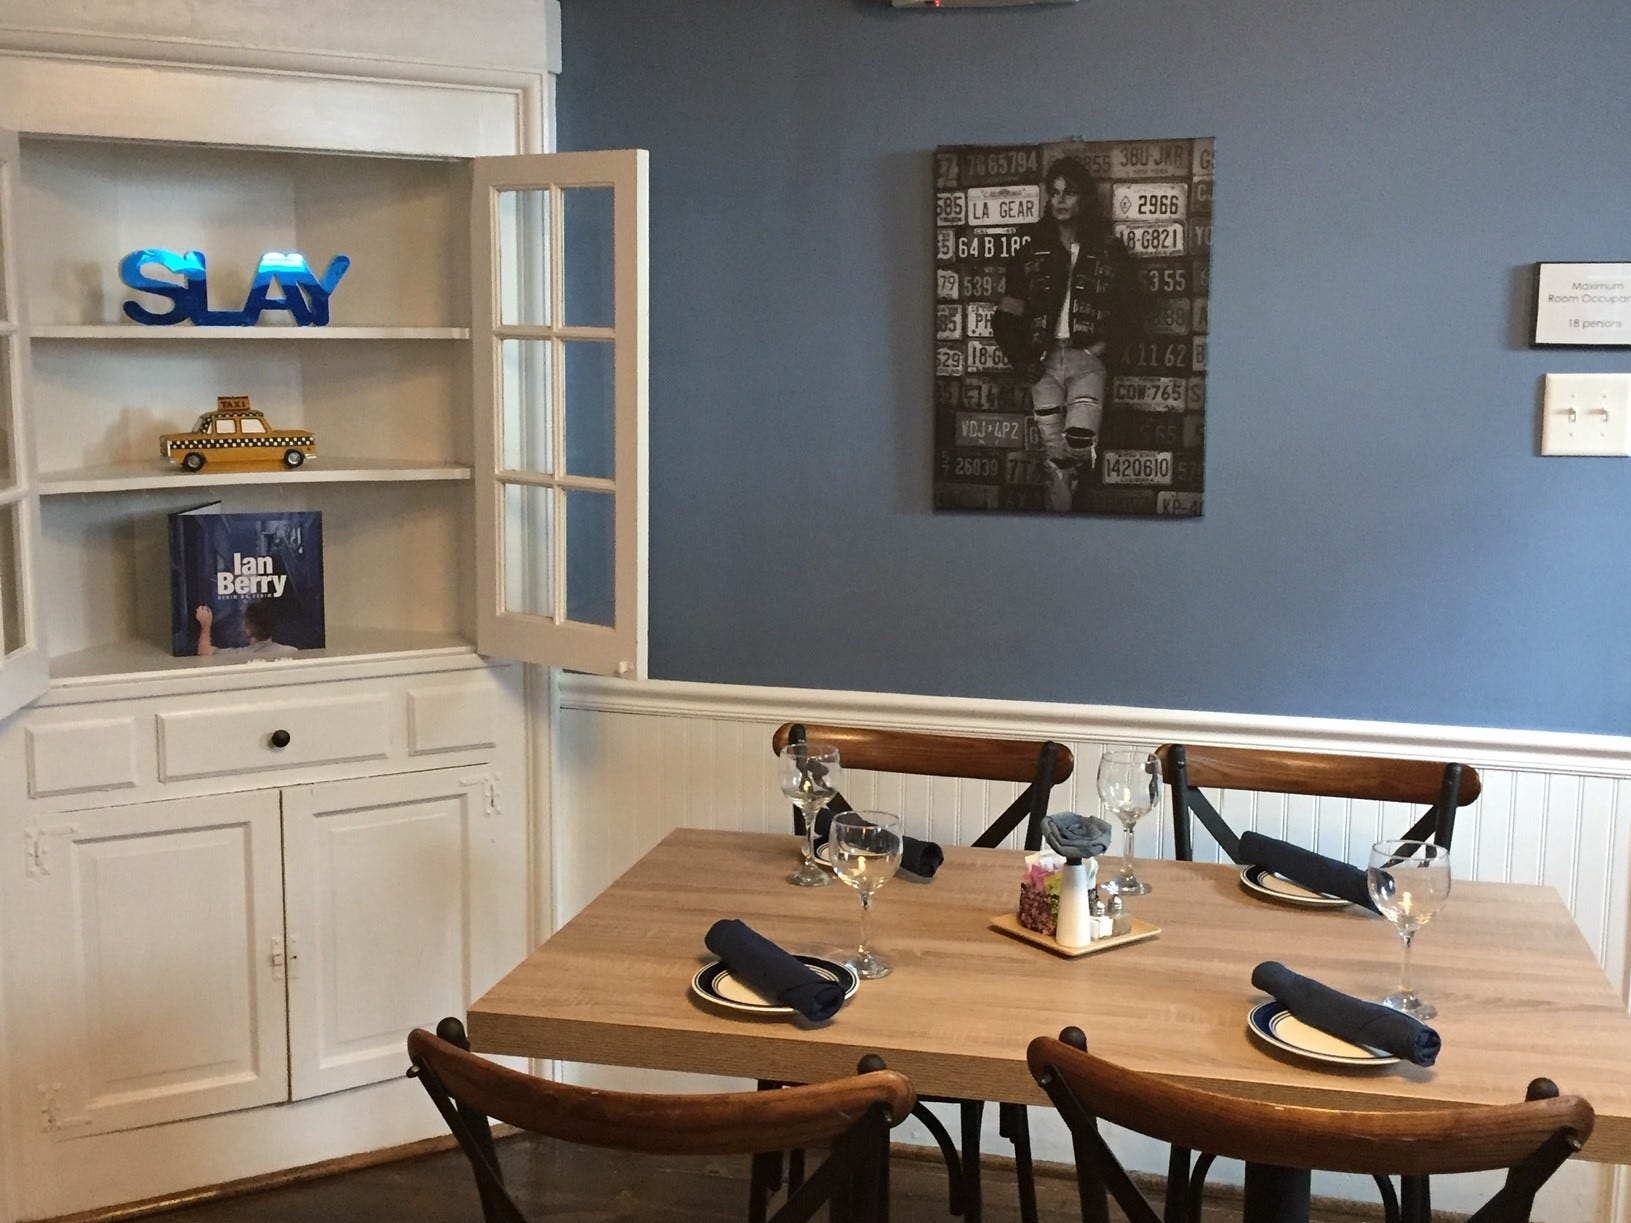 Denim American Bistro is going for a casual vibe that will feel comfortable to Gen-X and Gen Y guests, as well as families. The restaurant has a lot of fun evoking pop culture from Michael Jackson to Marilyn Monroe.